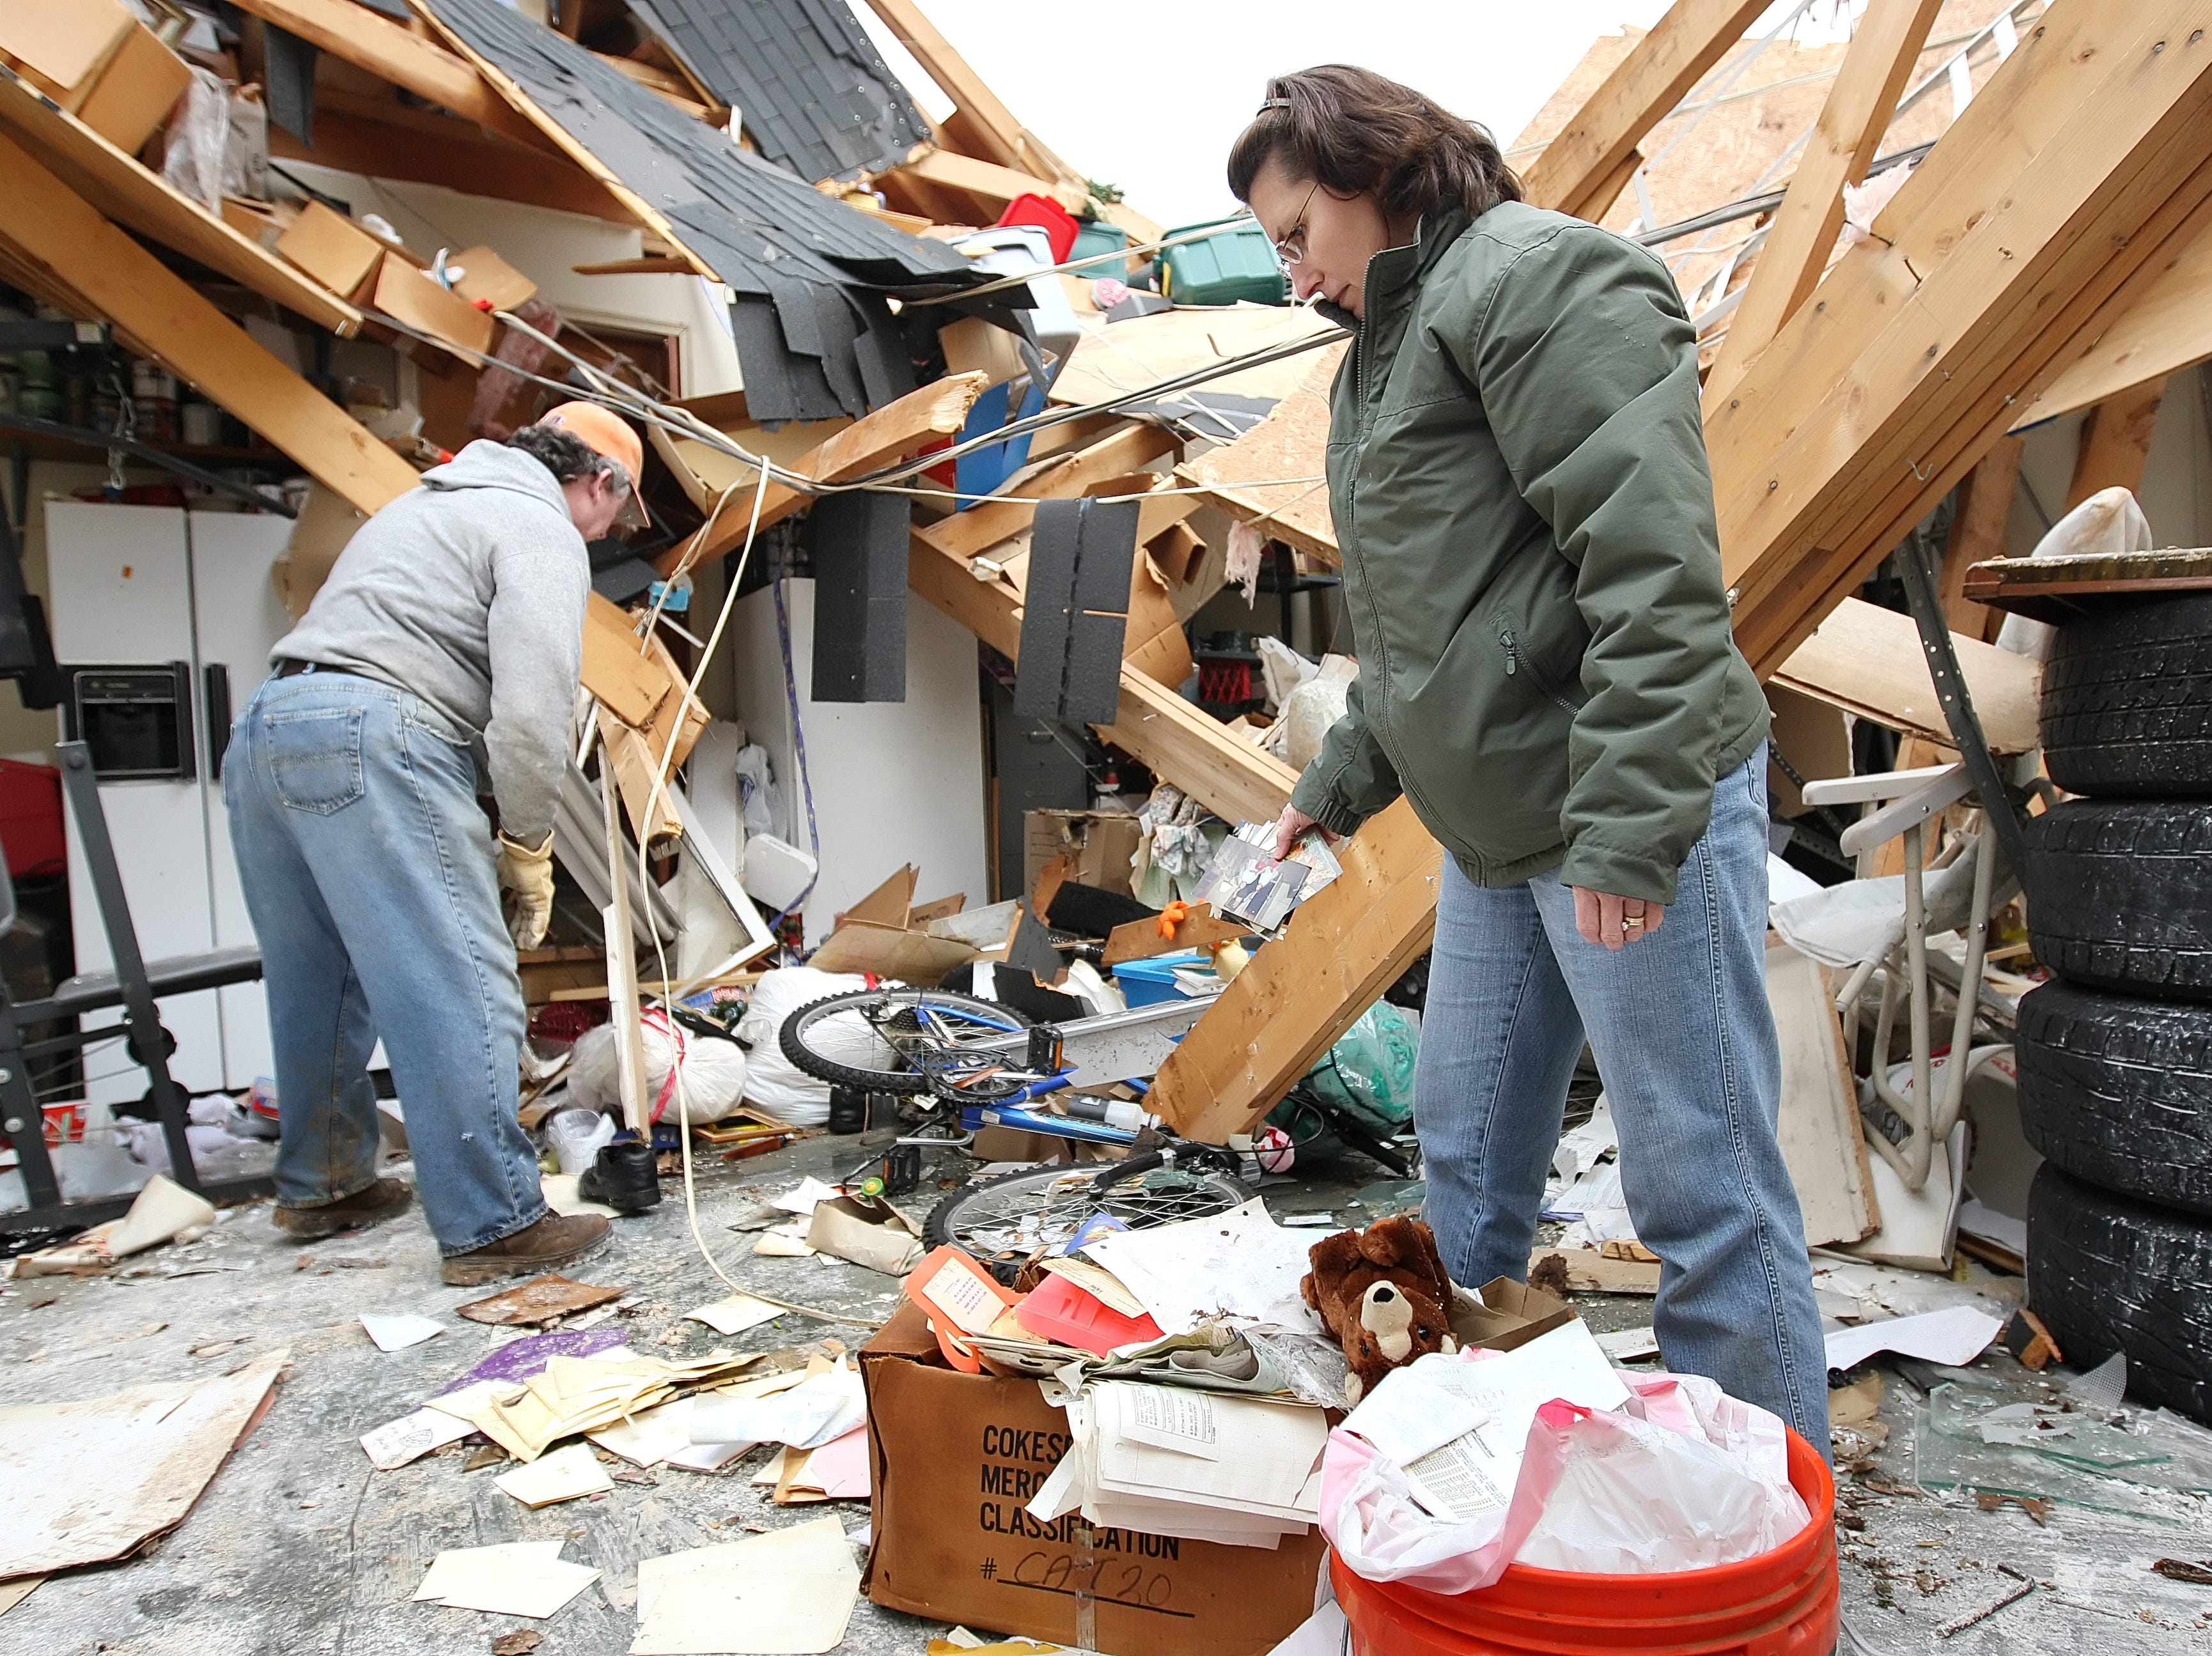 Joanna McClendon, right, looks through a pile of photographs while Dwain Hibdon clears away debris at a home in the Blackman Community which was badly damaged by a tornado in Murfreesboro, Tennessee on Saturday April 11, 2009. (Josh Anderson for The Tennessean)